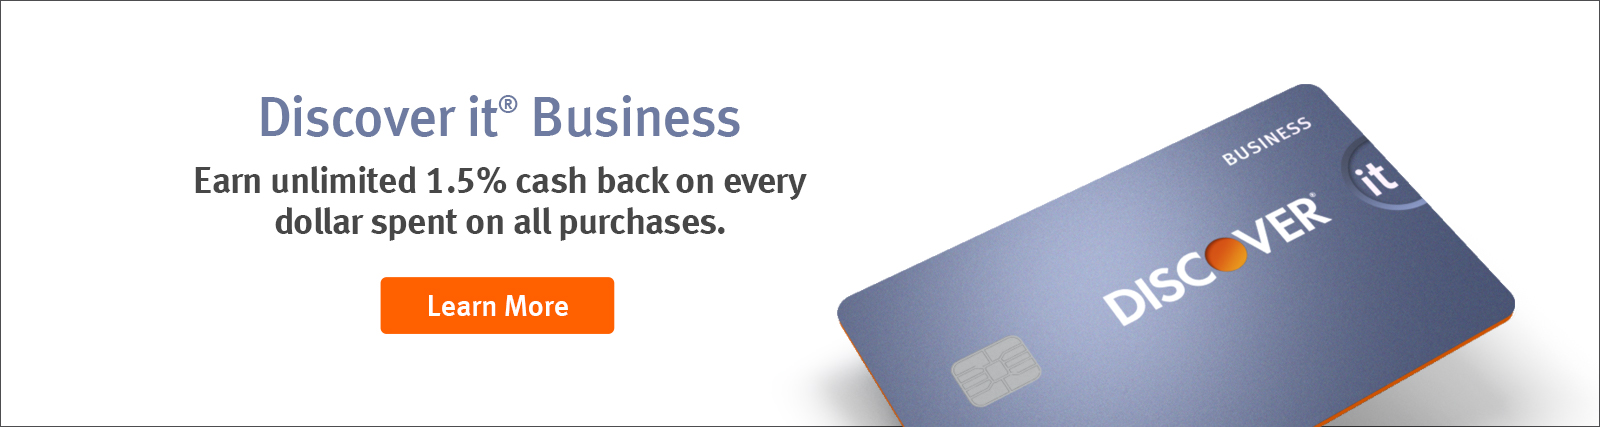 Small Business - Credit Resource Center  Discover